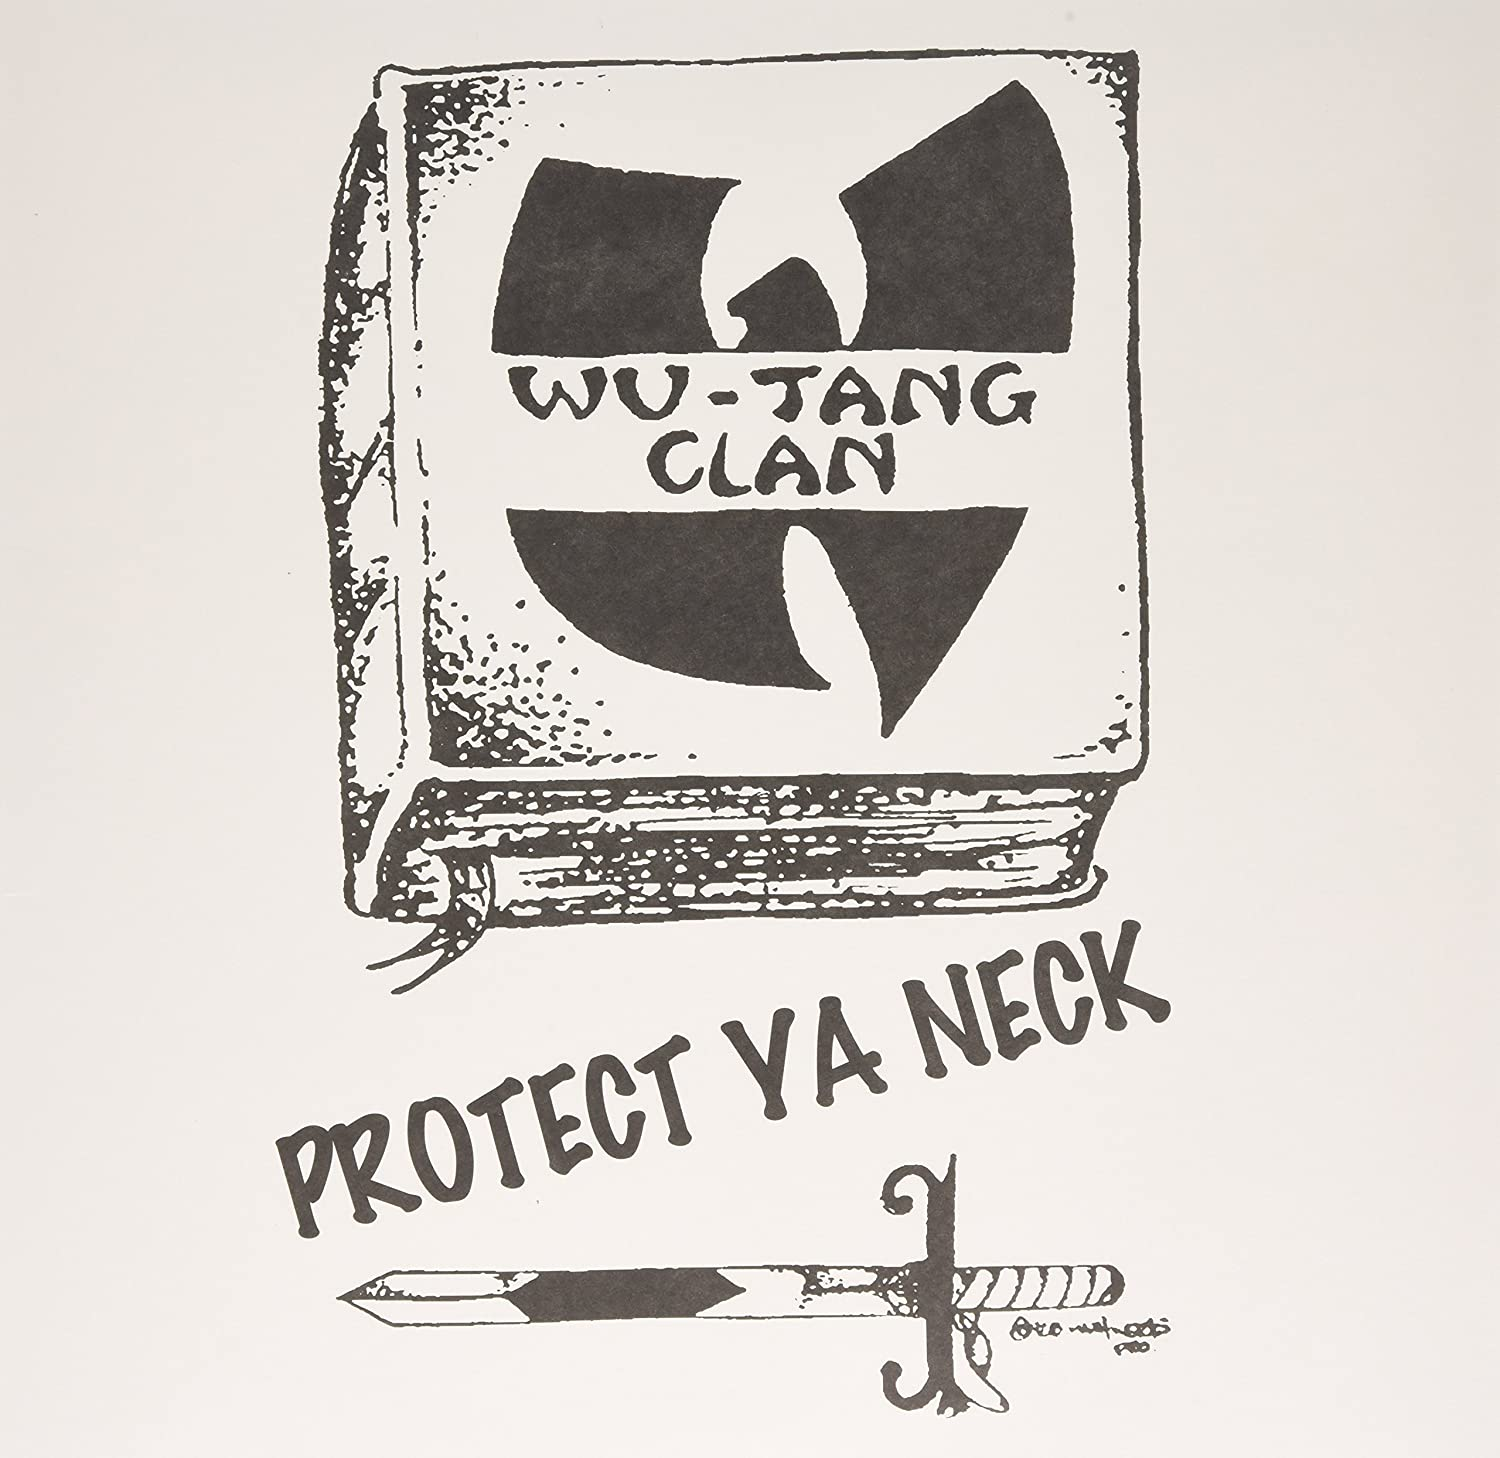 wu tang clan protect ya neck free mp3 download